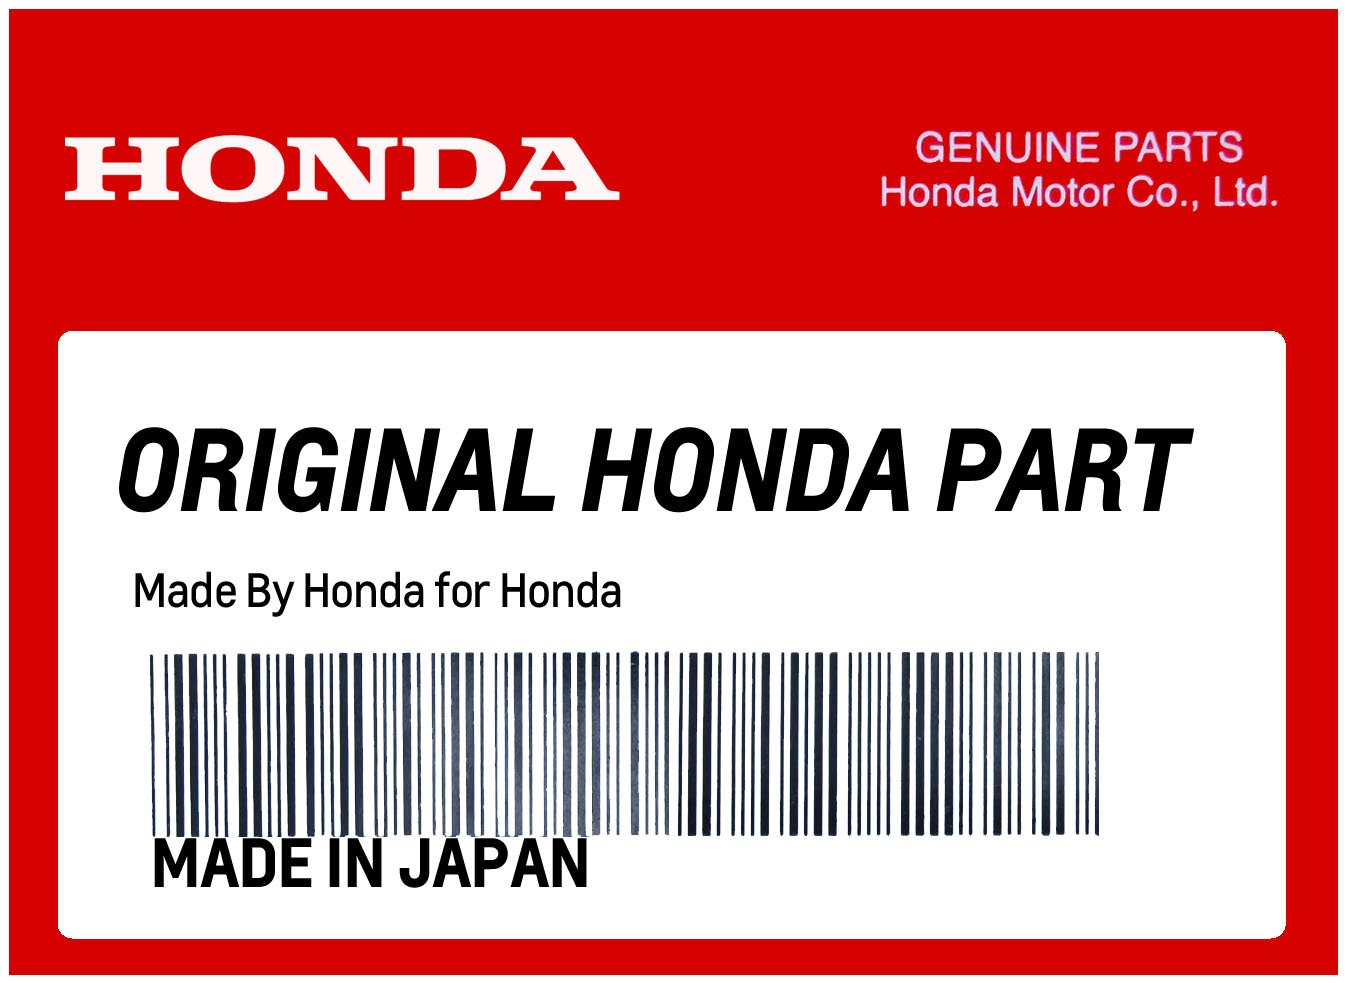 Honda 96001-06080-00 Bolt Genuine Original Equipment Manufacturer (OEM) Part